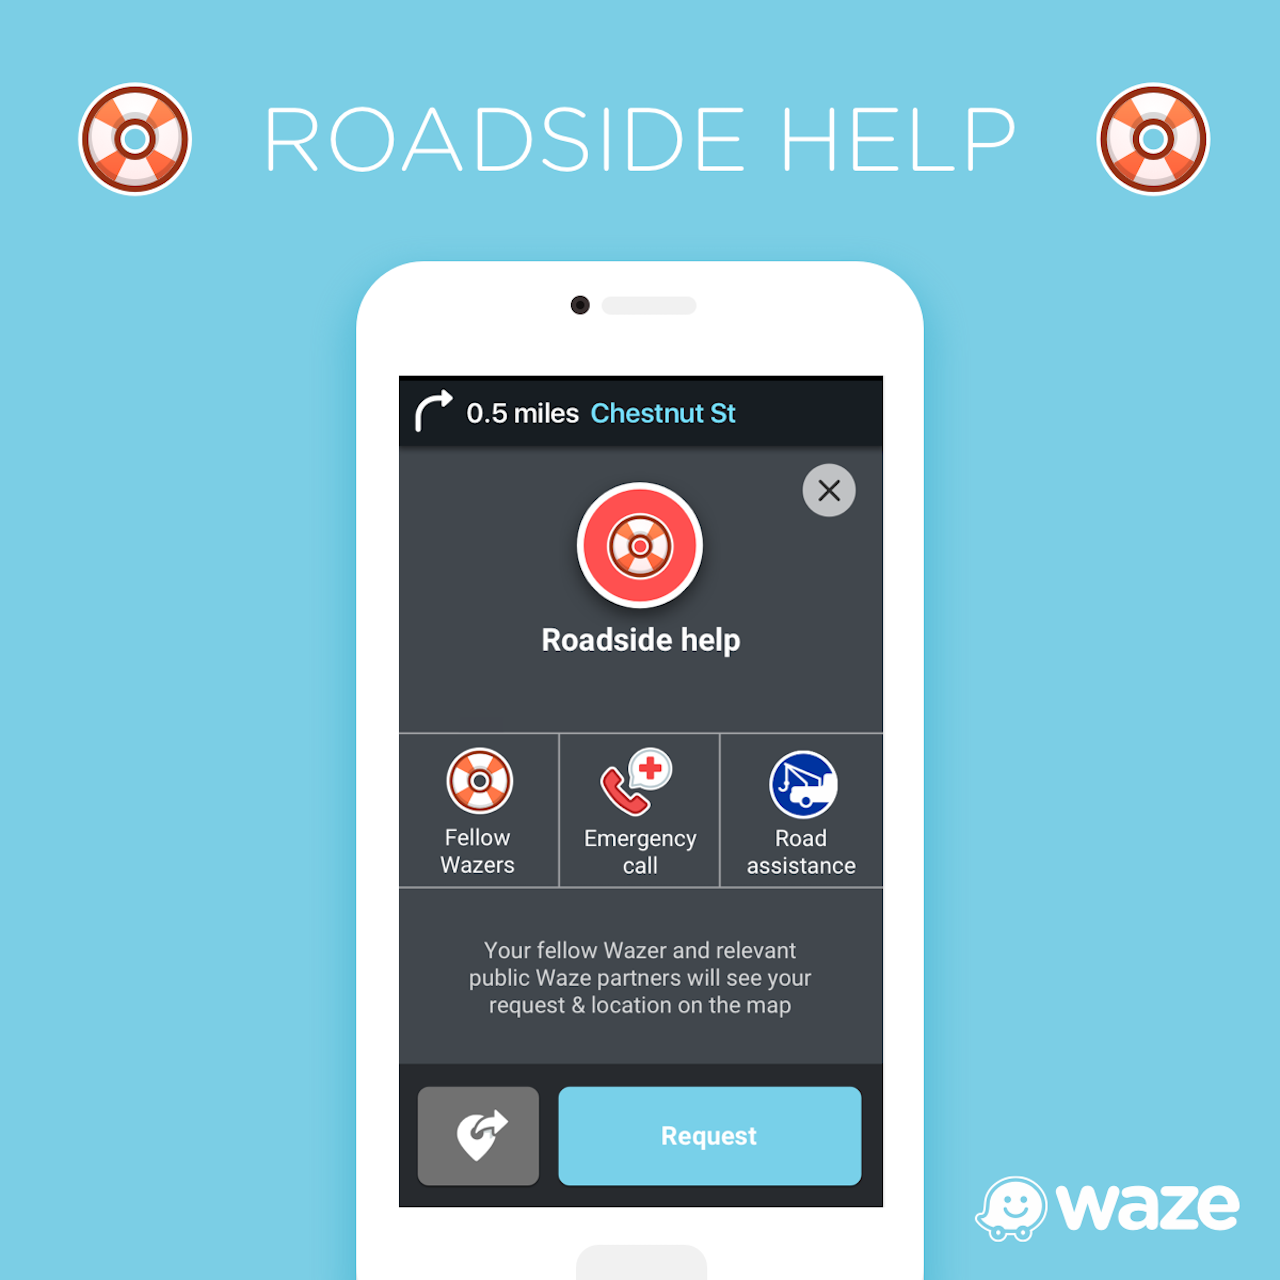 Allstate Roadside Assistance Phone Number >> For Roadside Assistance It S Waze And Allstate To The Rescue